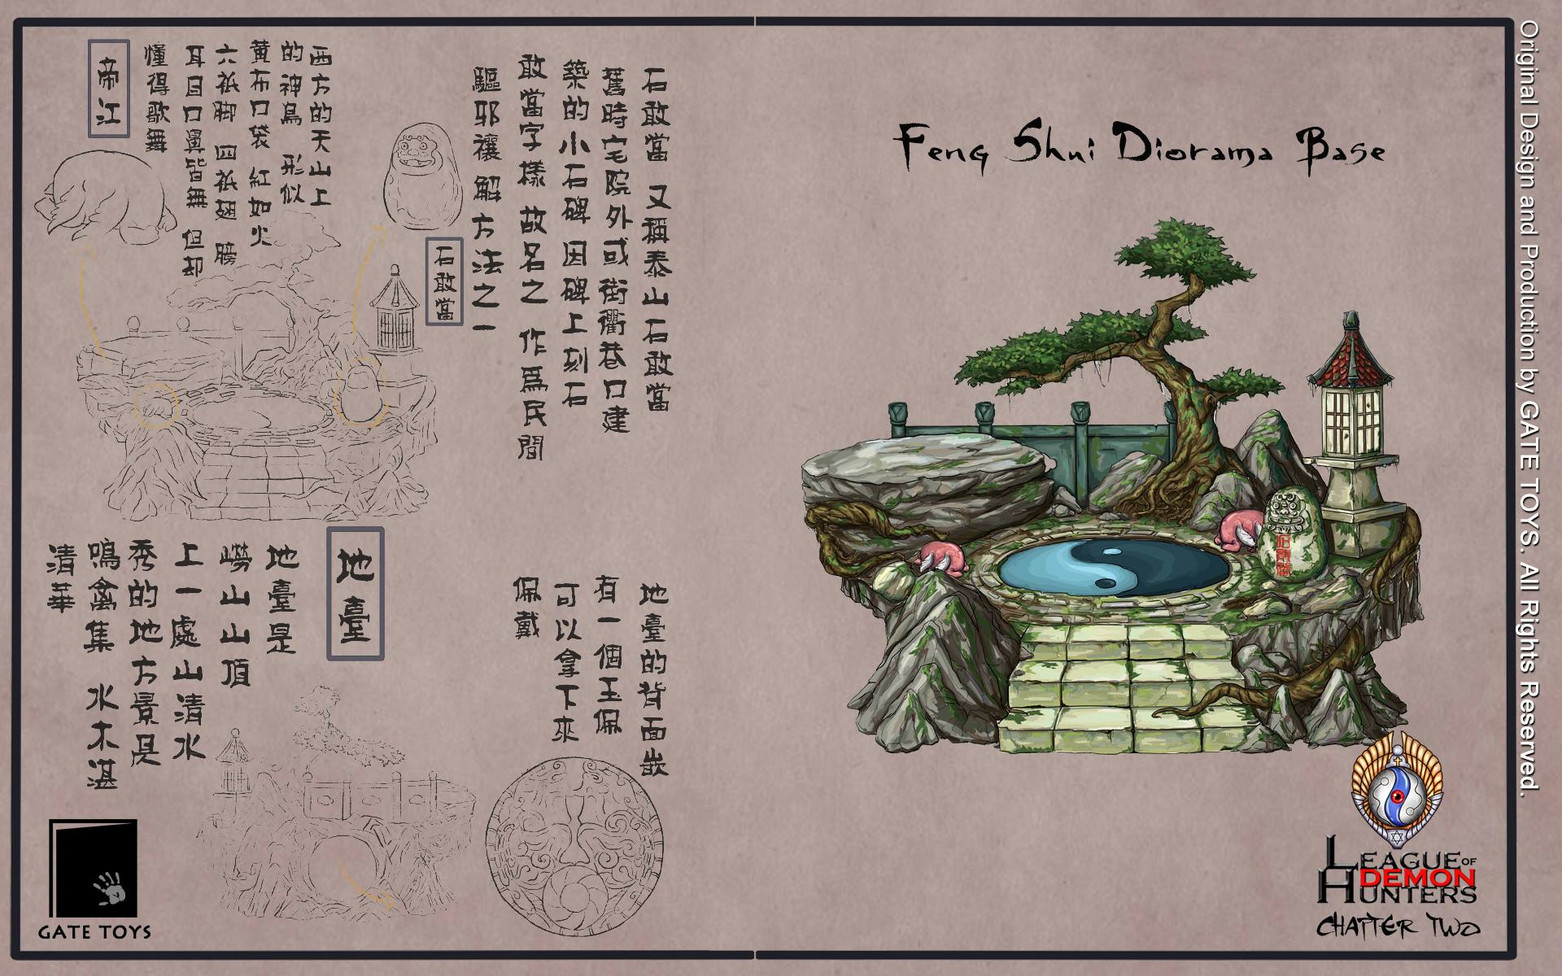 The Mythical Maoshan Diorama Base depicts the tranquil sanctuary on Maoshan. In which there is a Stone Gandang that commonly used to dispel evil spirits, as well as a Di Jiang (Hundun), a headless six legged beings with firey wings, a mythical birds from the west.